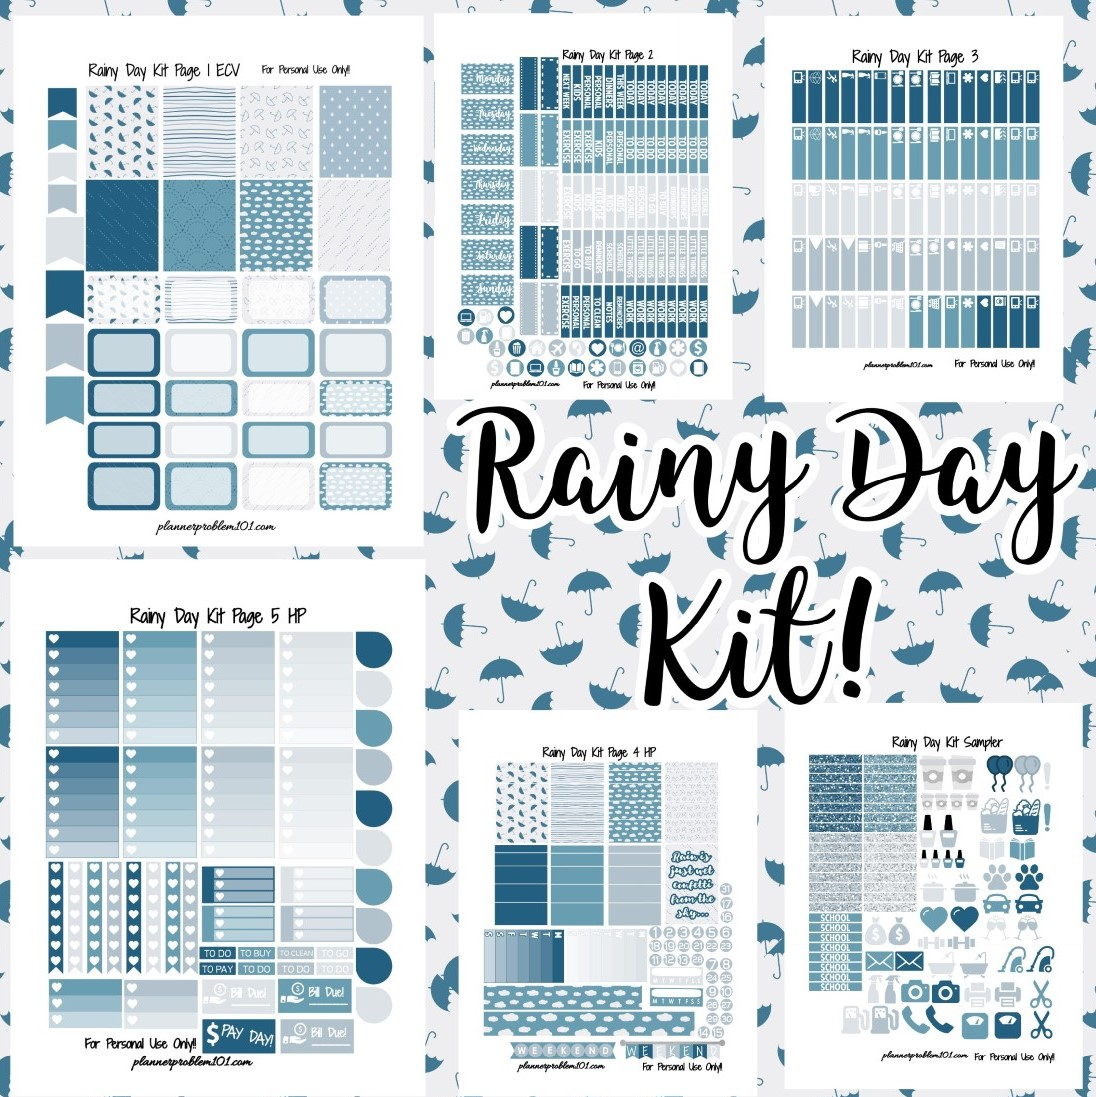 Rainy Day Kit! | Free Printable Planner Stickers ...